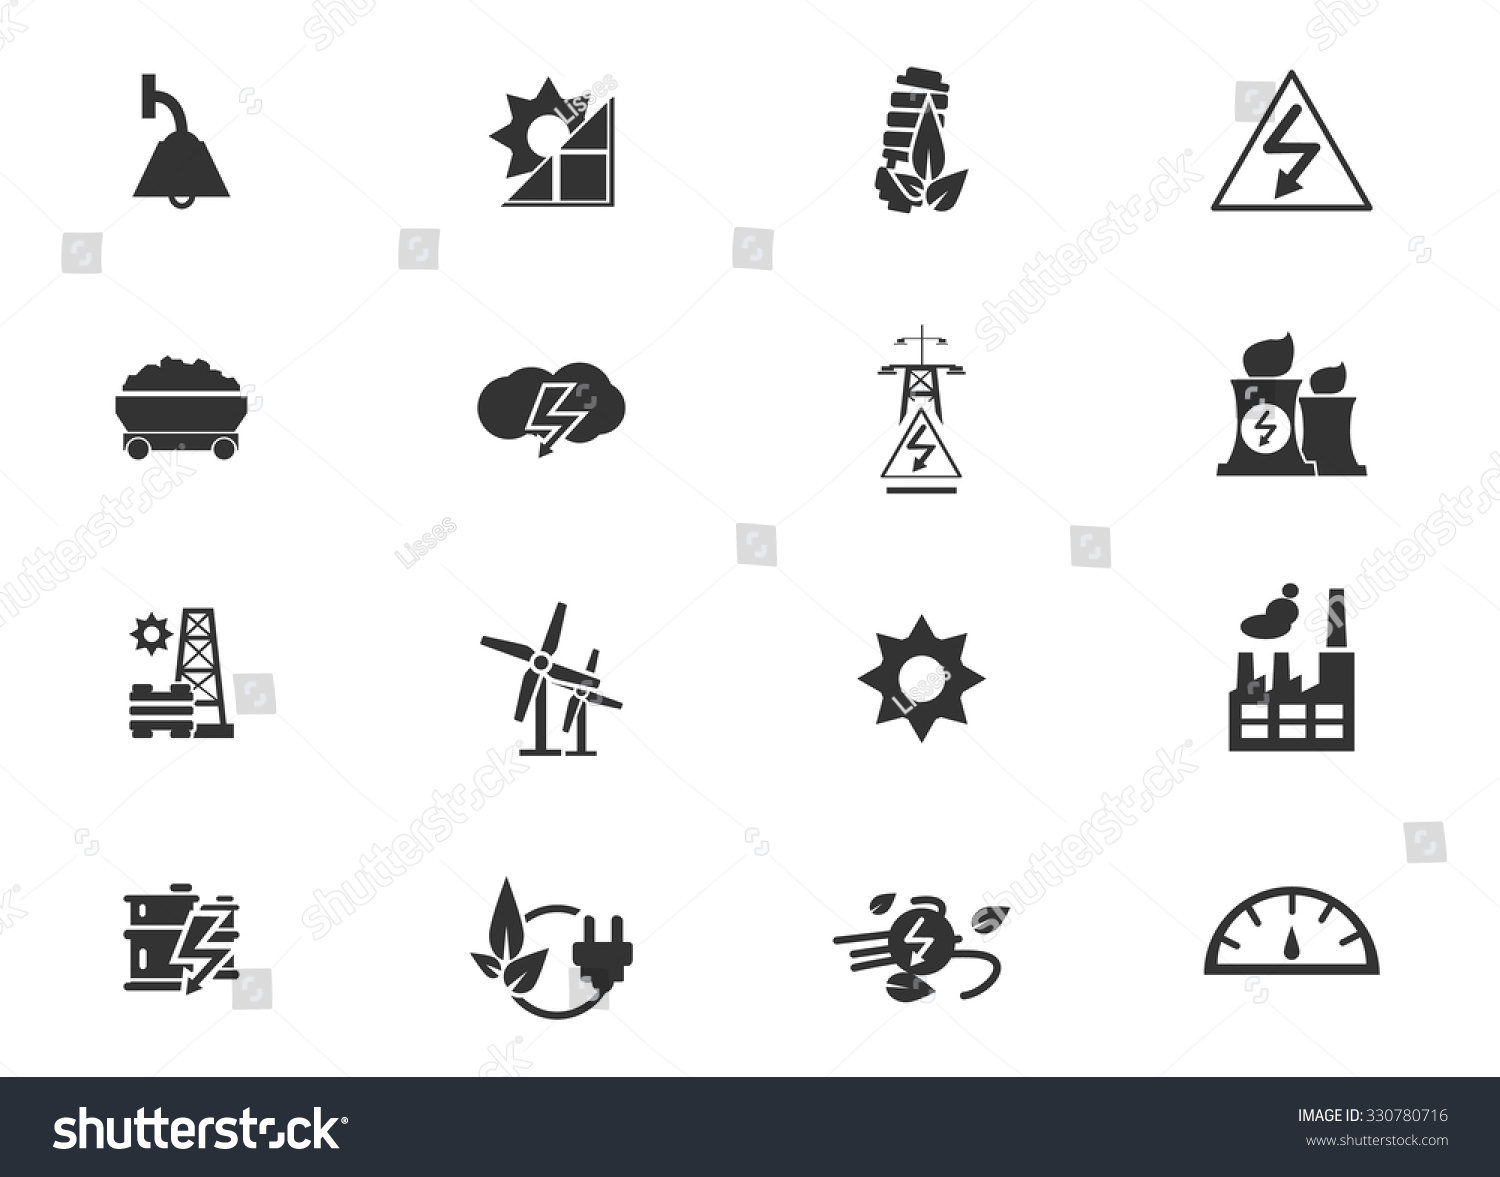 Energy power symbol web icons stock vector 330780716 shutterstock energy and power symbol for web icons biocorpaavc Gallery